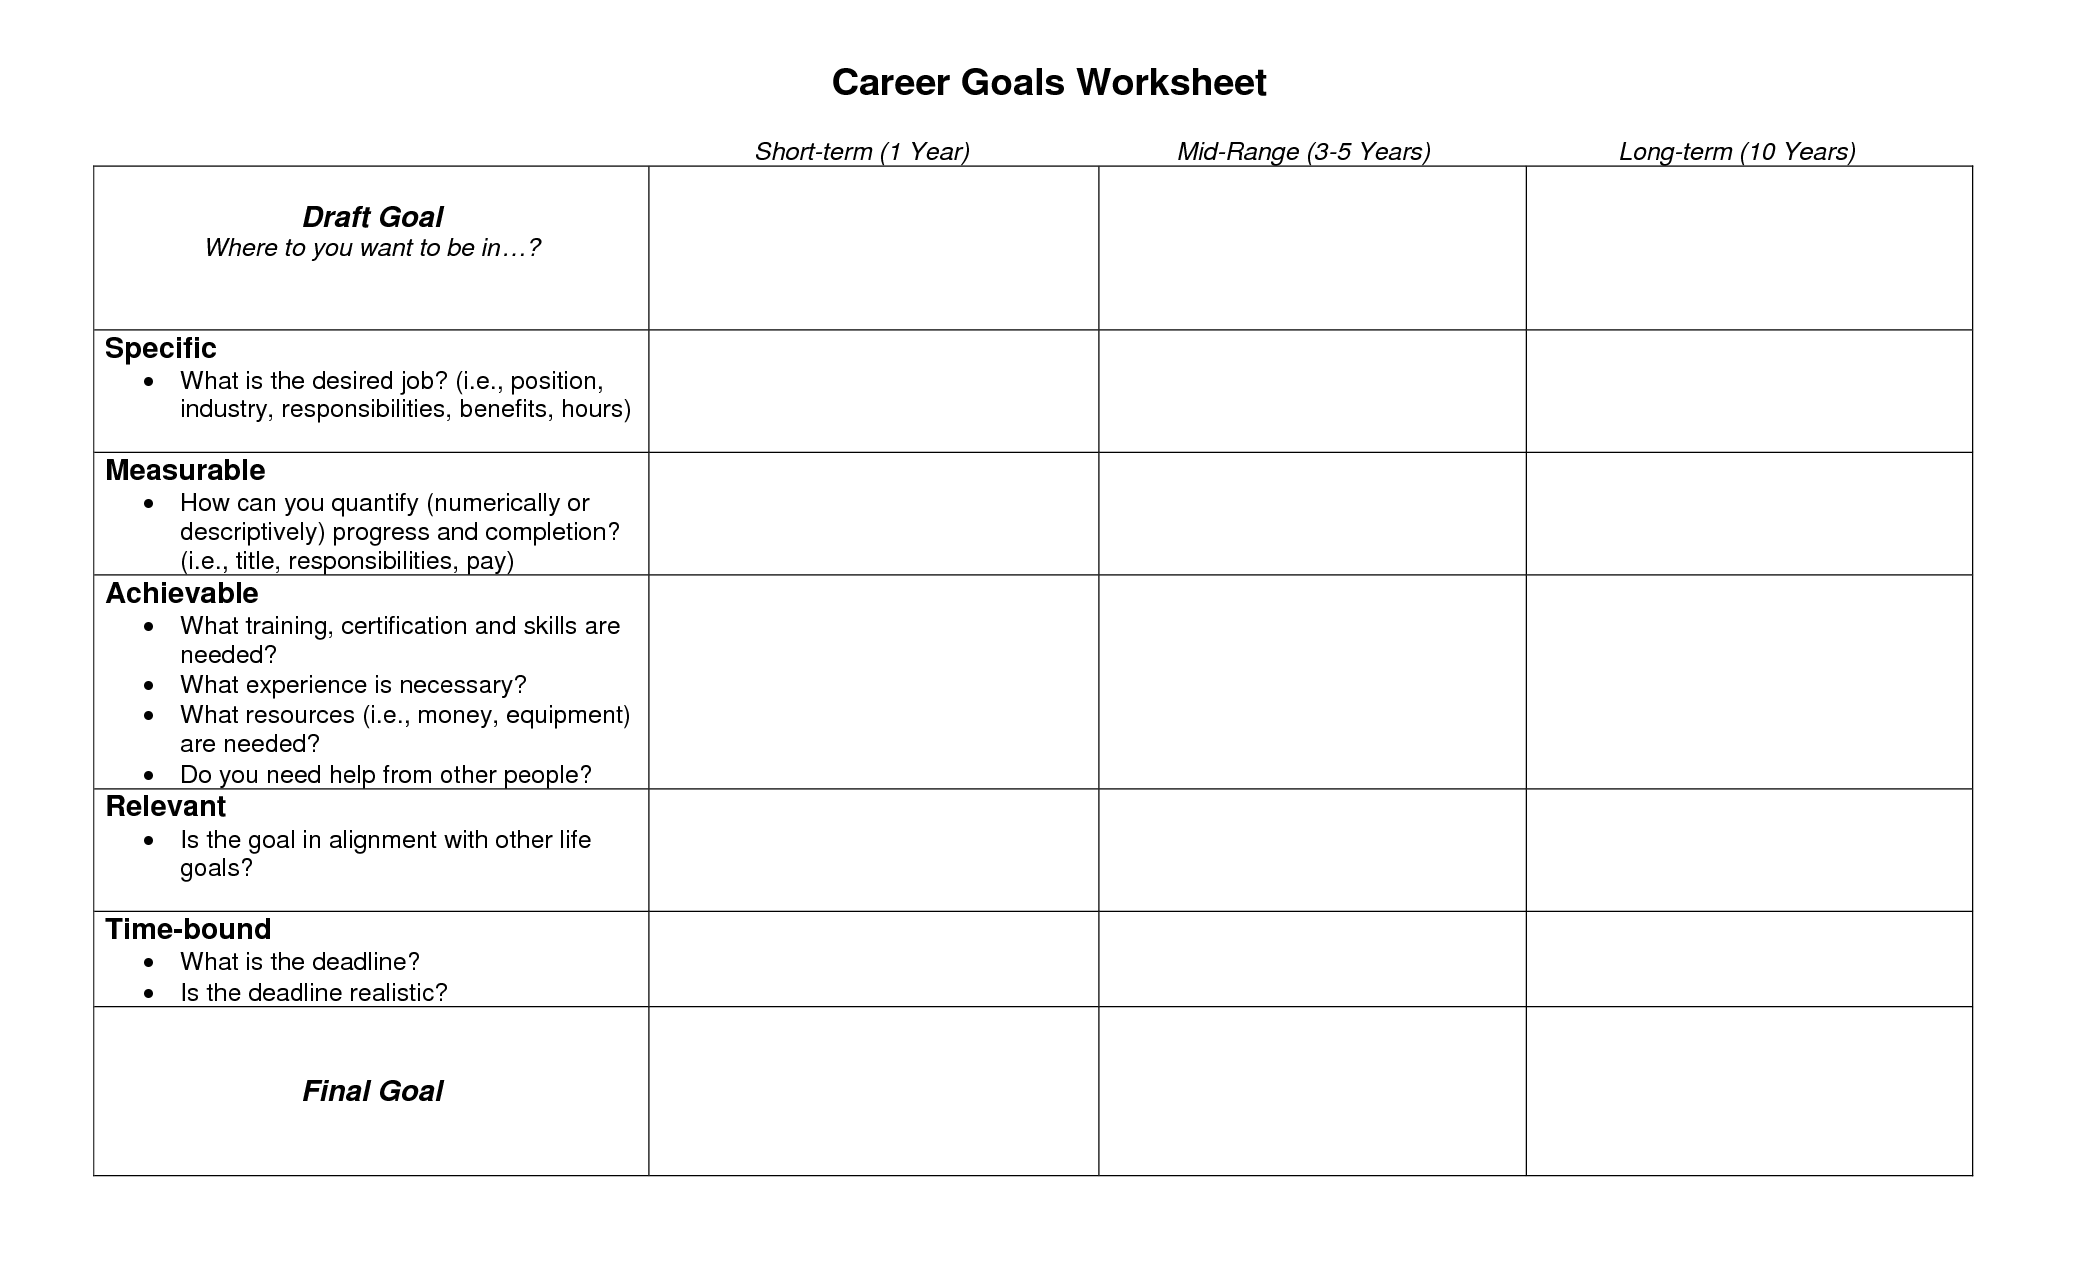 Smart Goals Worksheet For Career